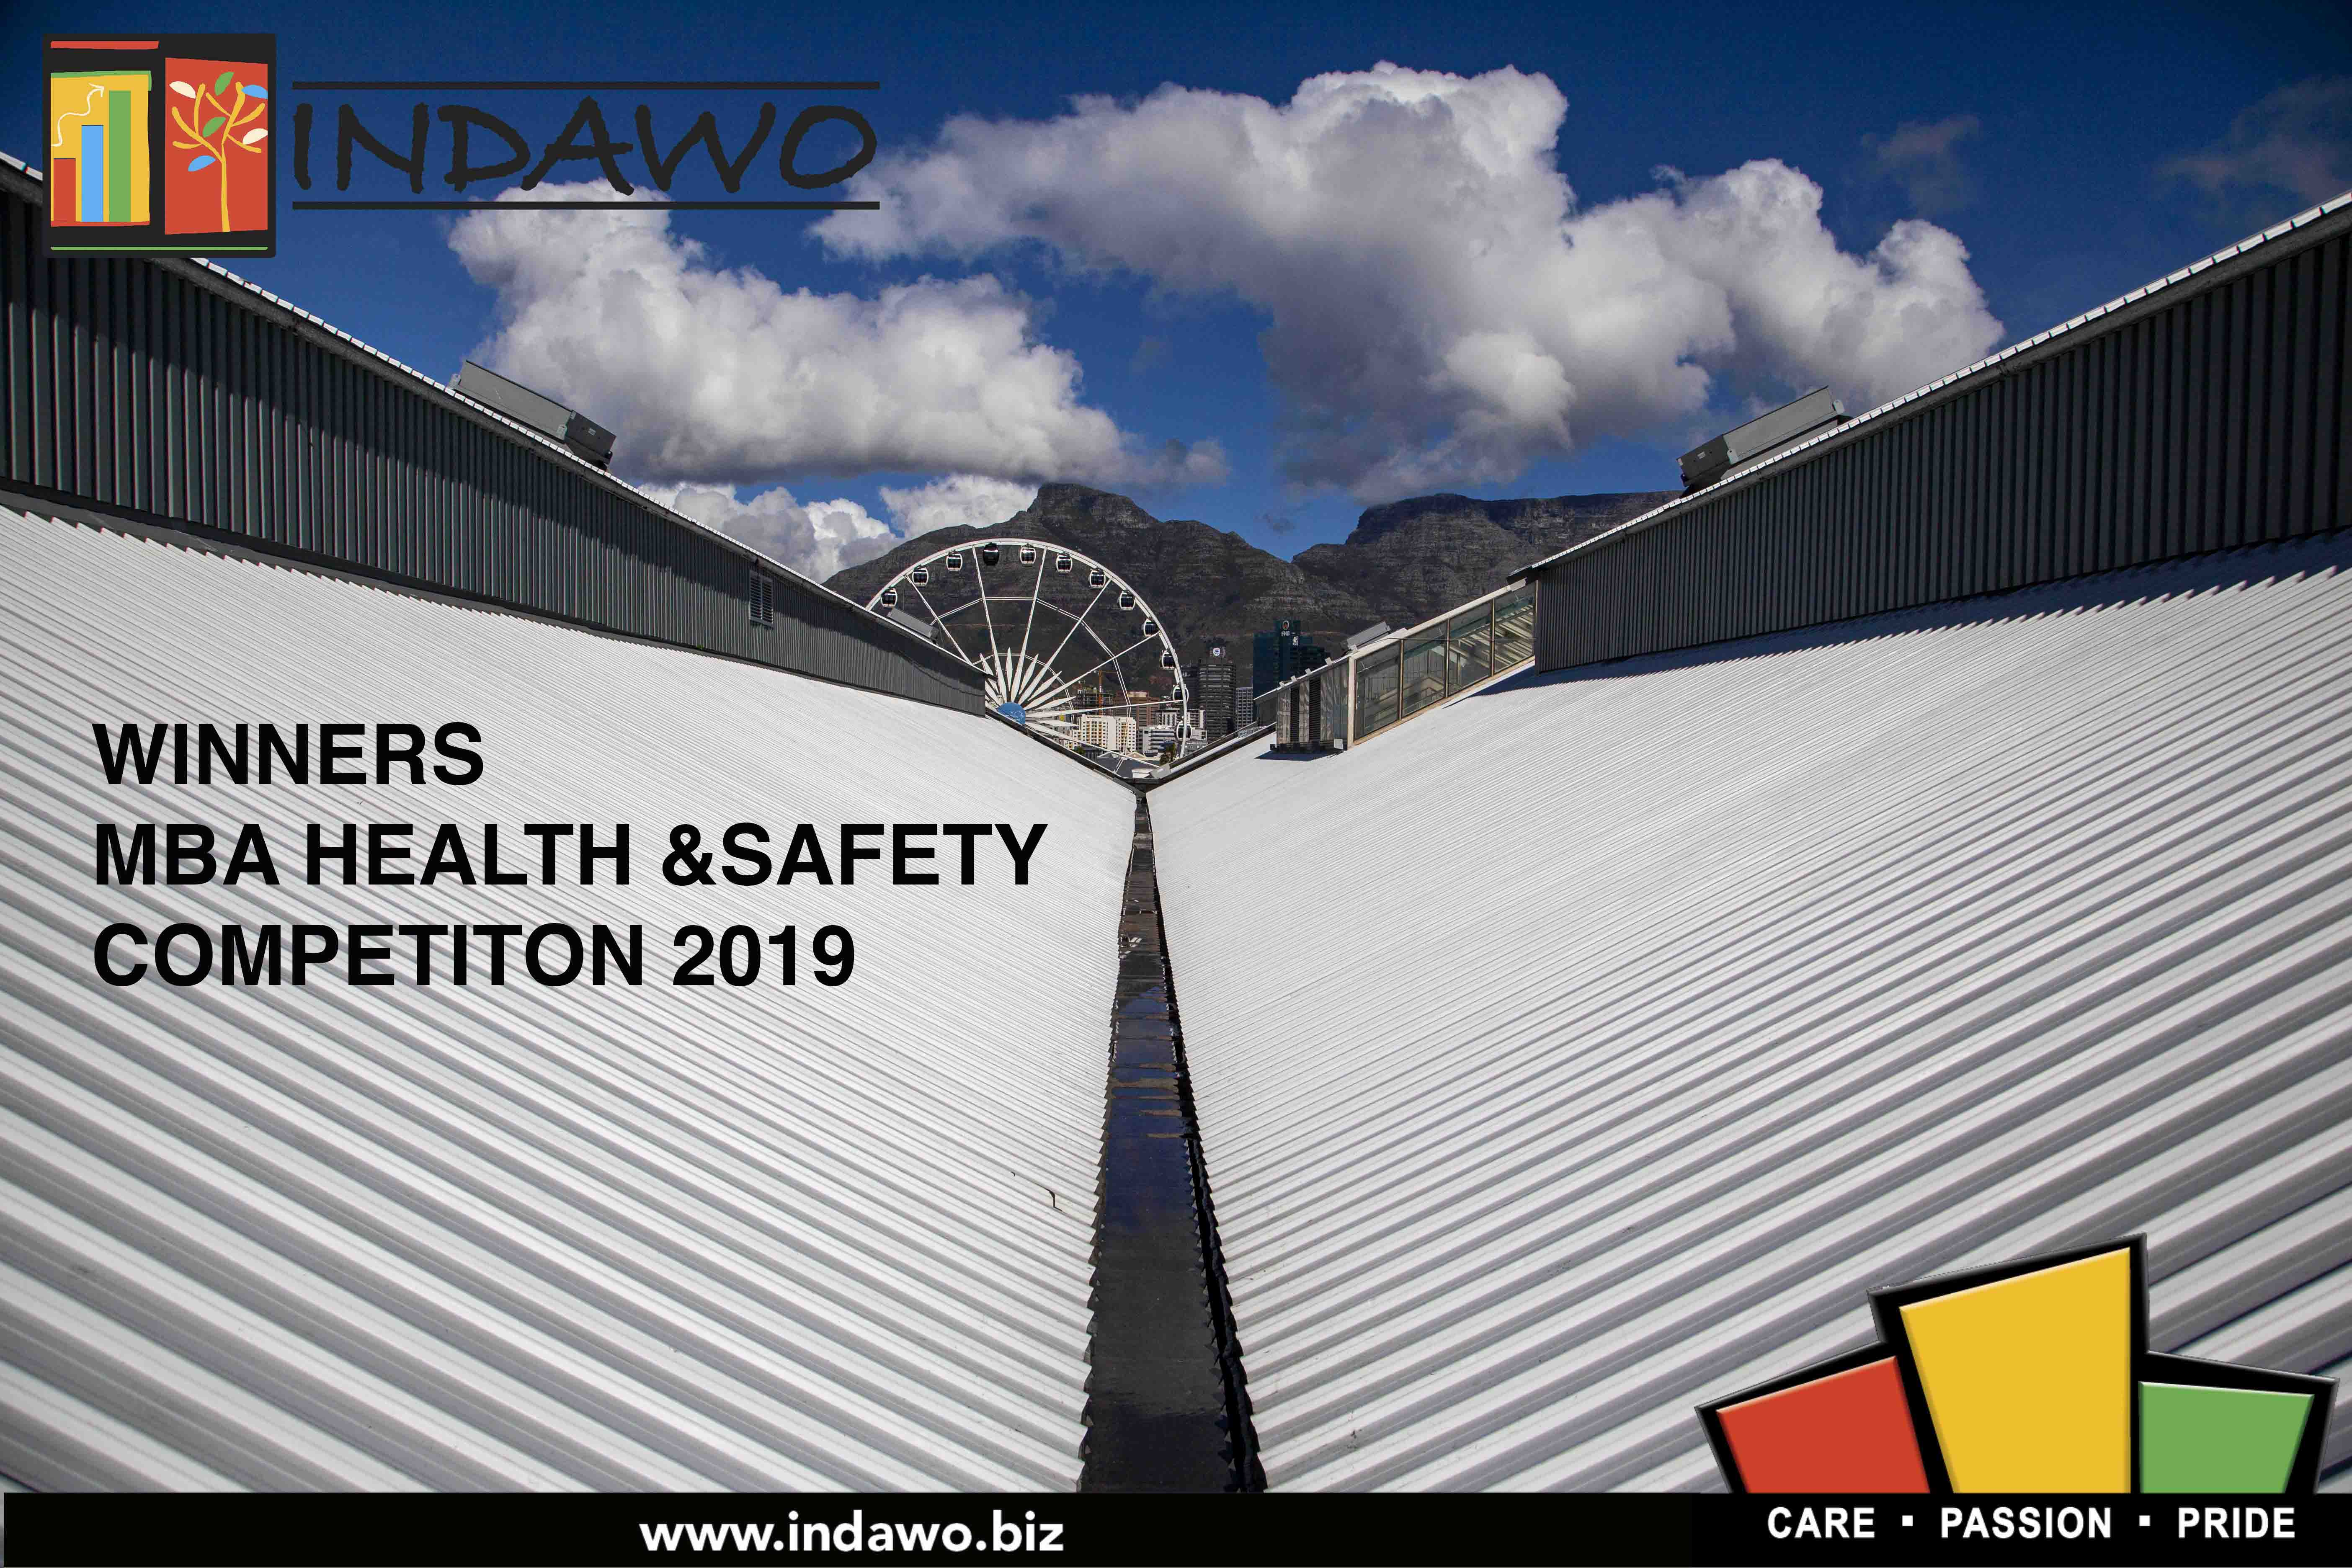 Indawo, Kings Warehouse, MBA South Africa Health and Safety competition 2019 competition, second place nationally, first place regionally